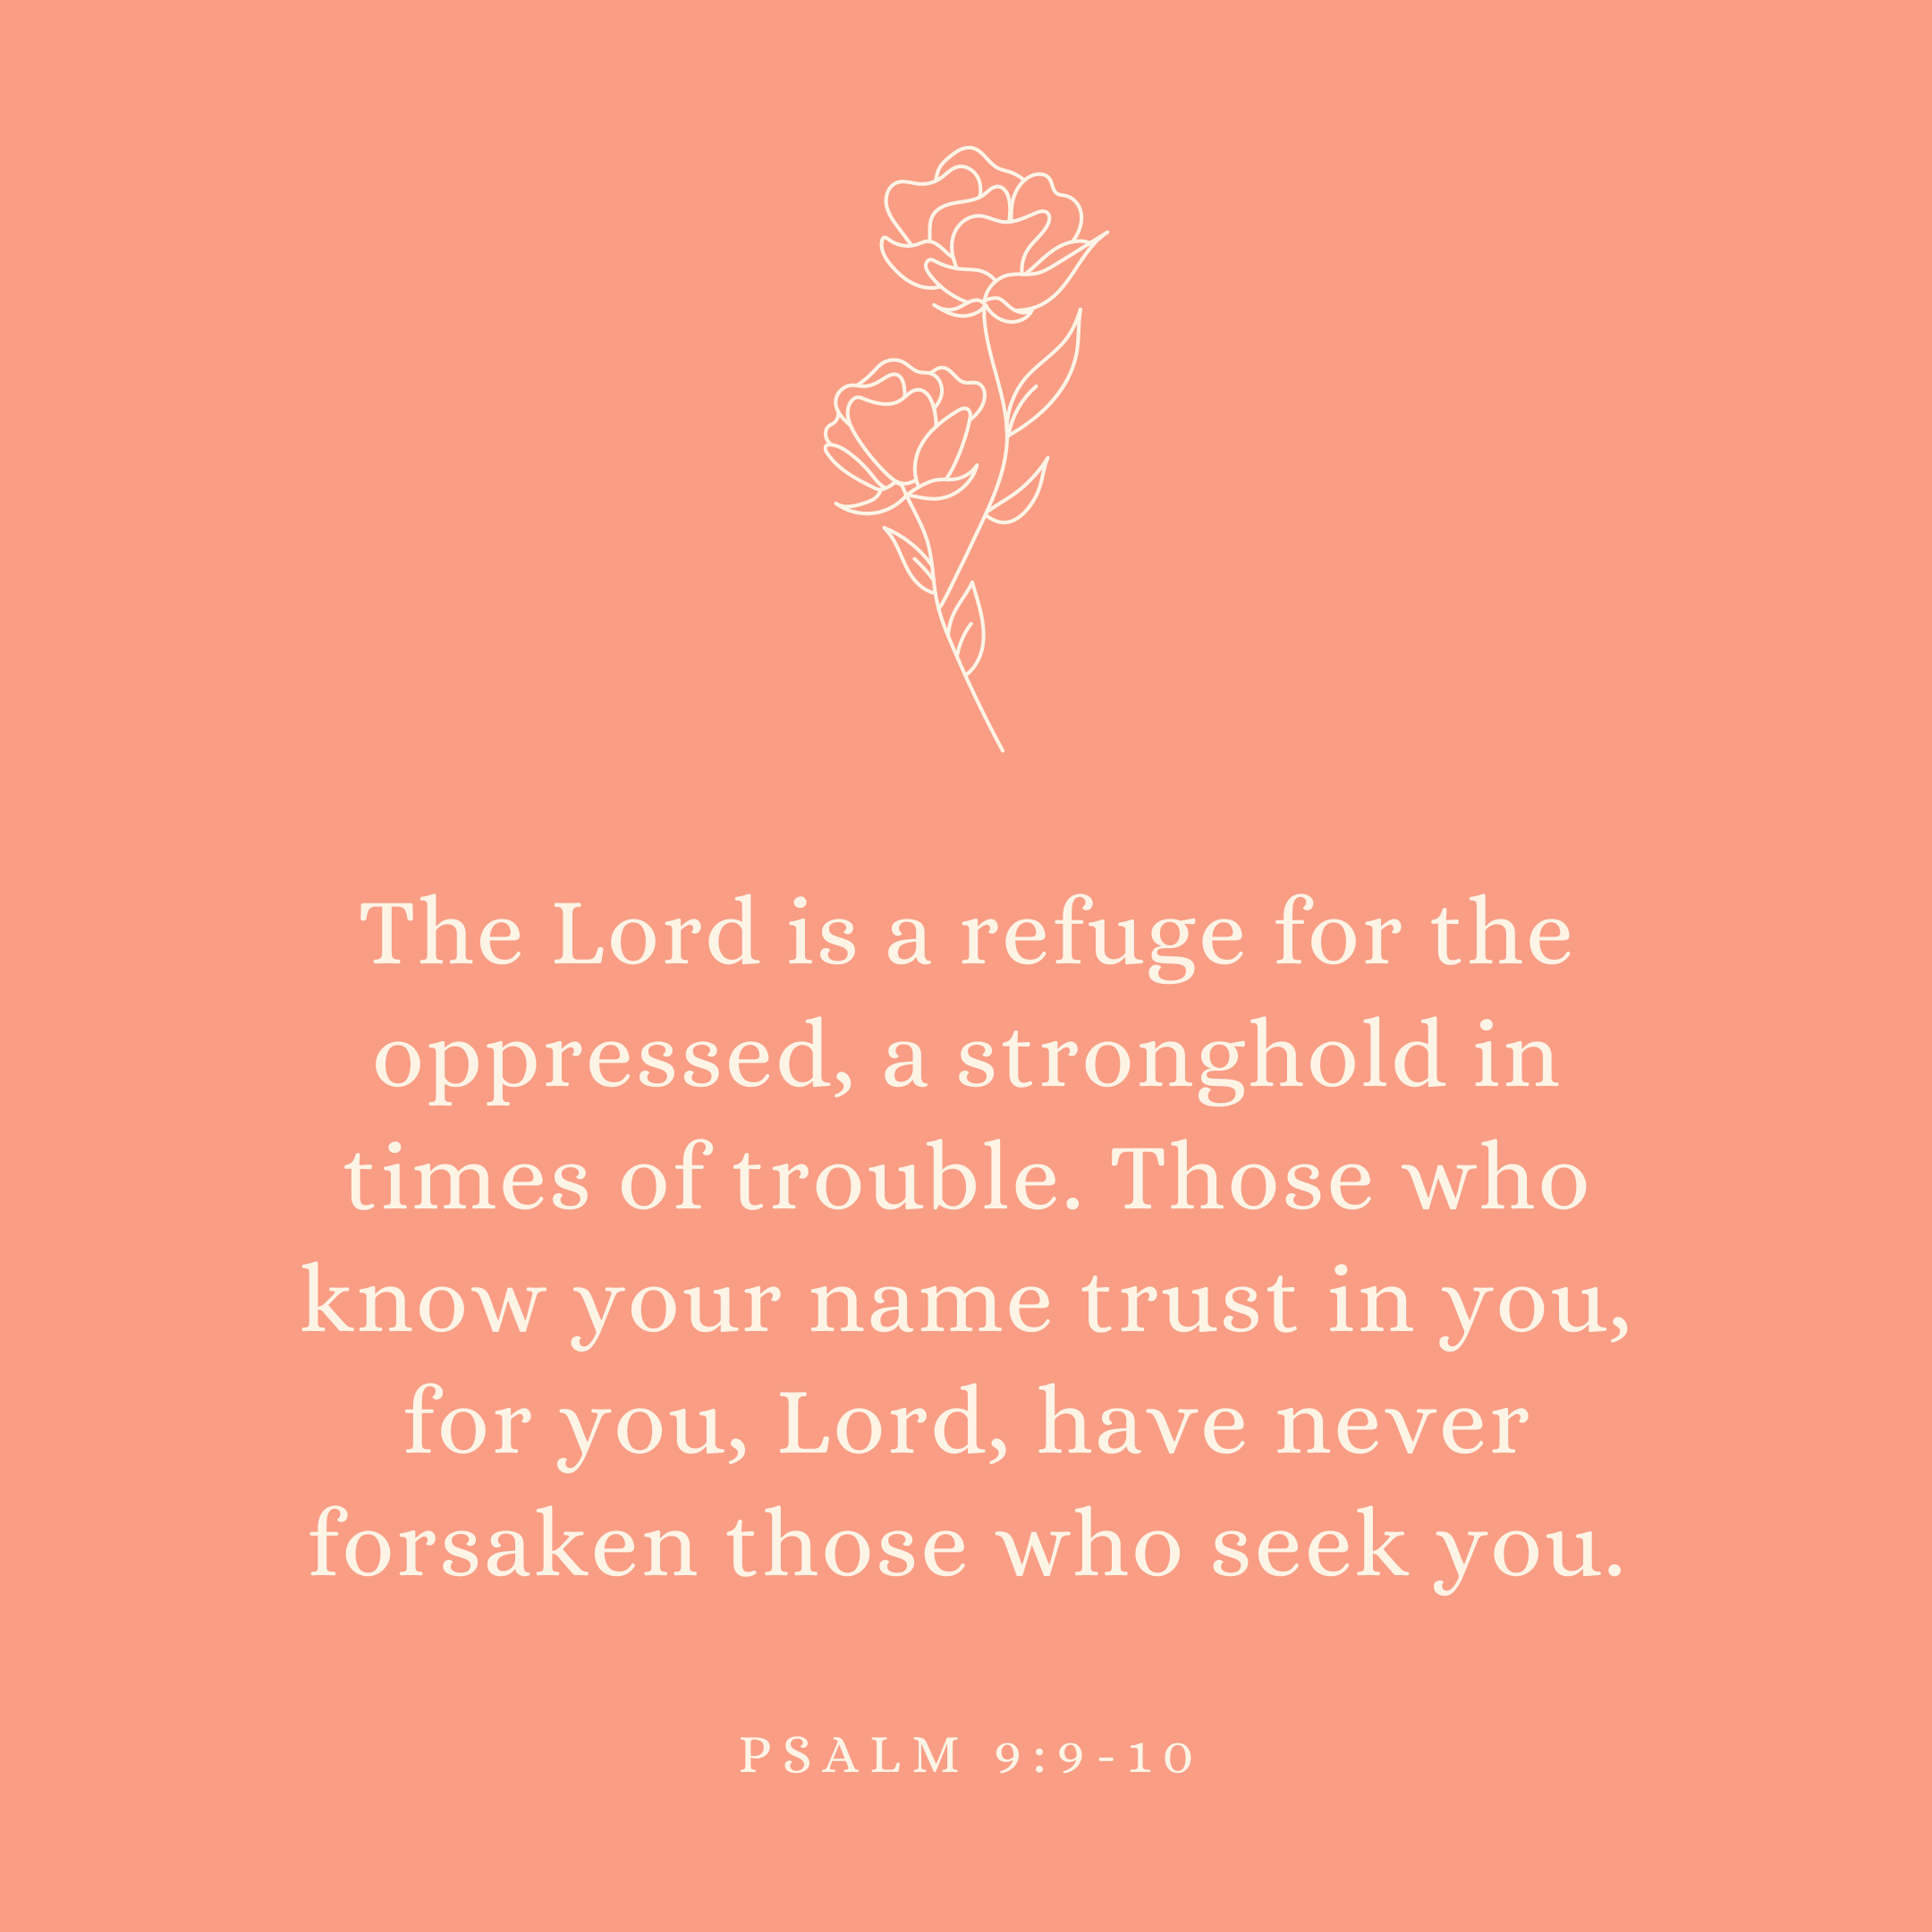 Psalm 9:9-10 The Lord is a refuge for the oppressed, a stronghold in times of trouble. Those who know your name trust in you, for you, Lord, have never forsaken those who seek you.